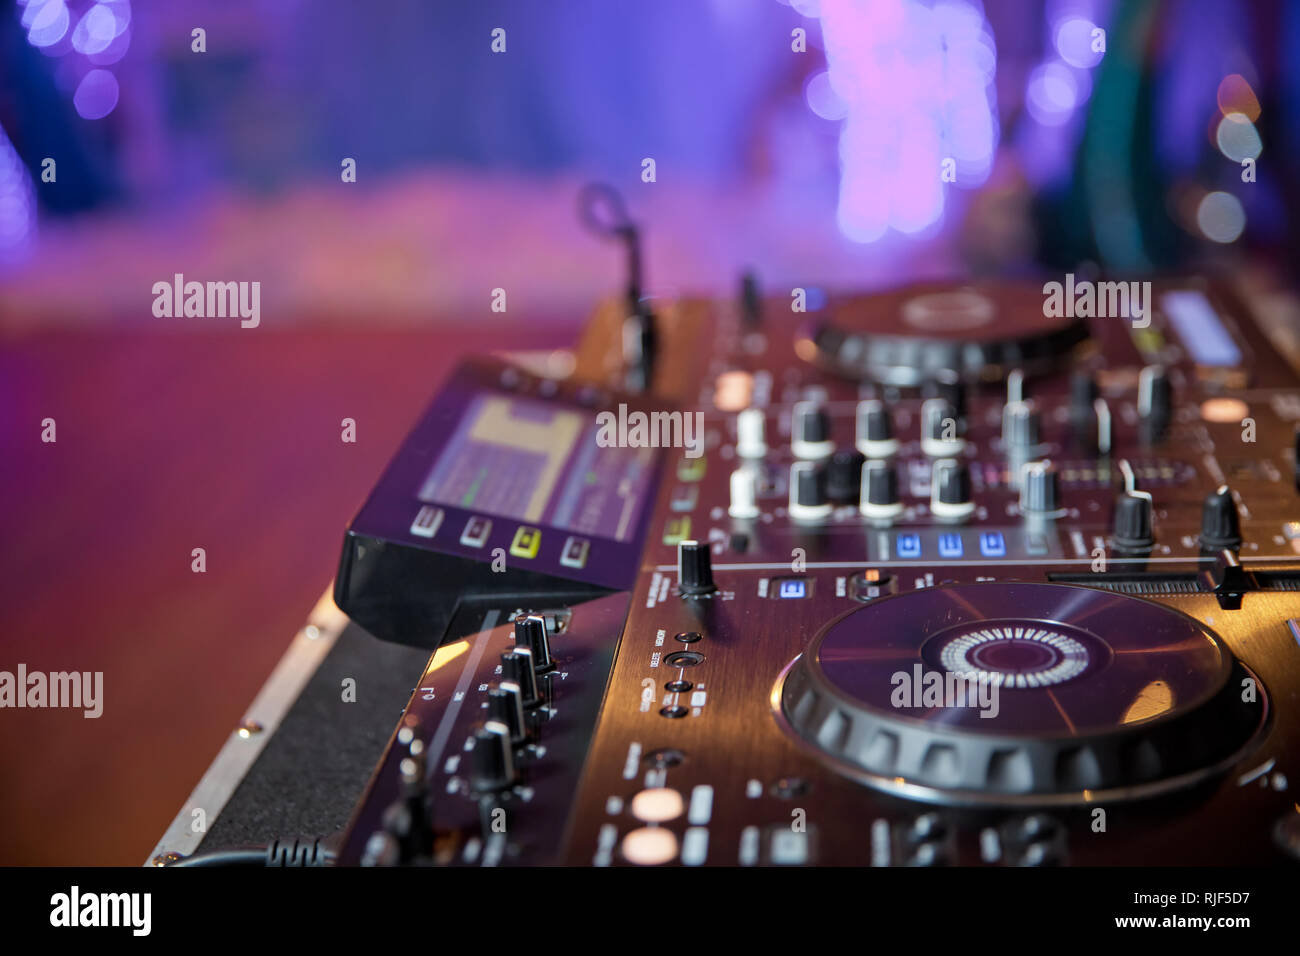 Dj Mixer Night Party In Stock Photos & Dj Mixer Night Party In Stock